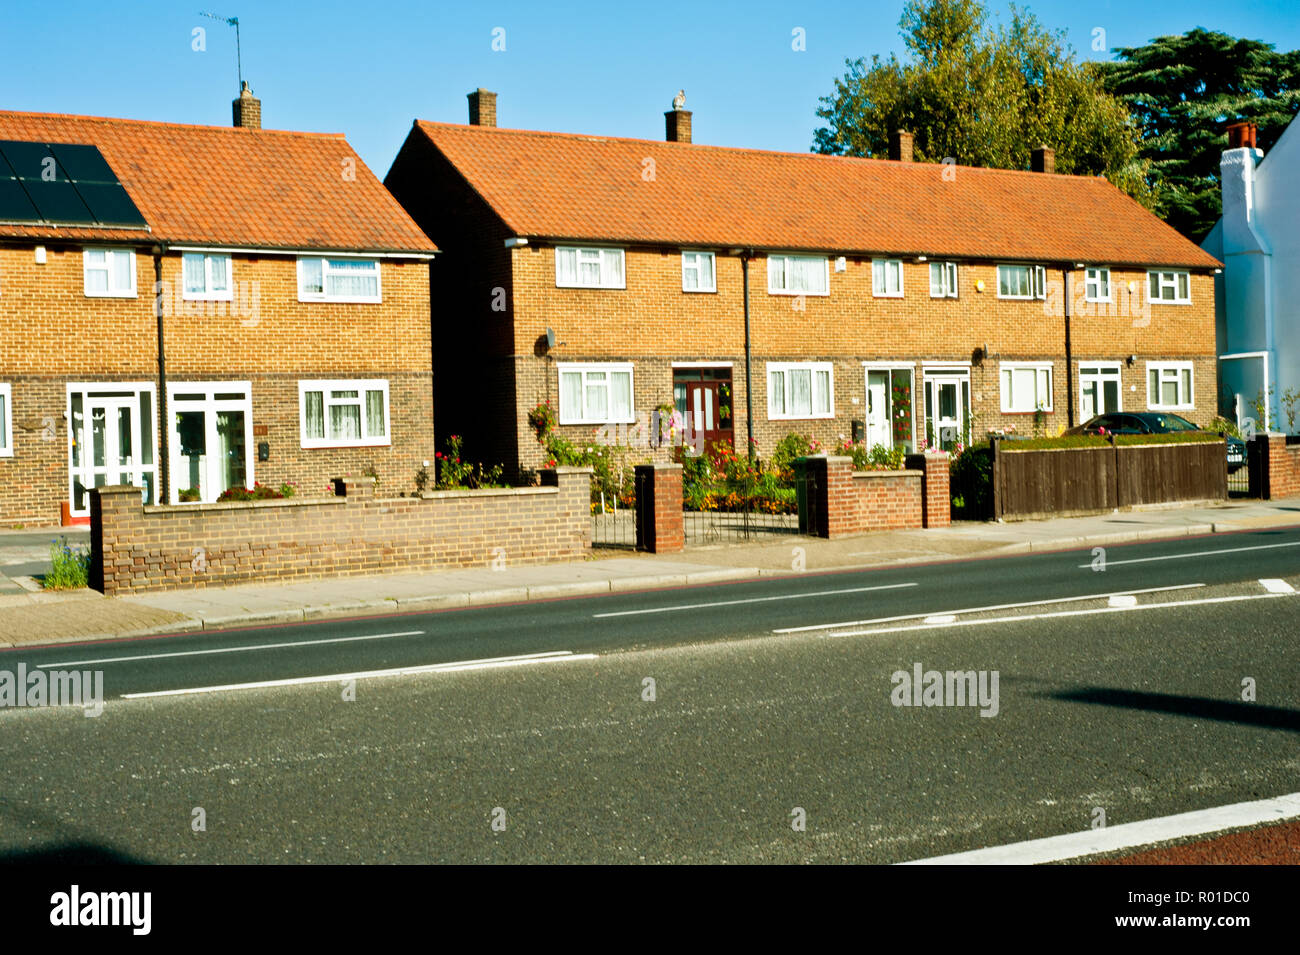 Ex Local Authority Houses, Bromley Road, Catford, Borough of Lewisham, London, England - Stock Image